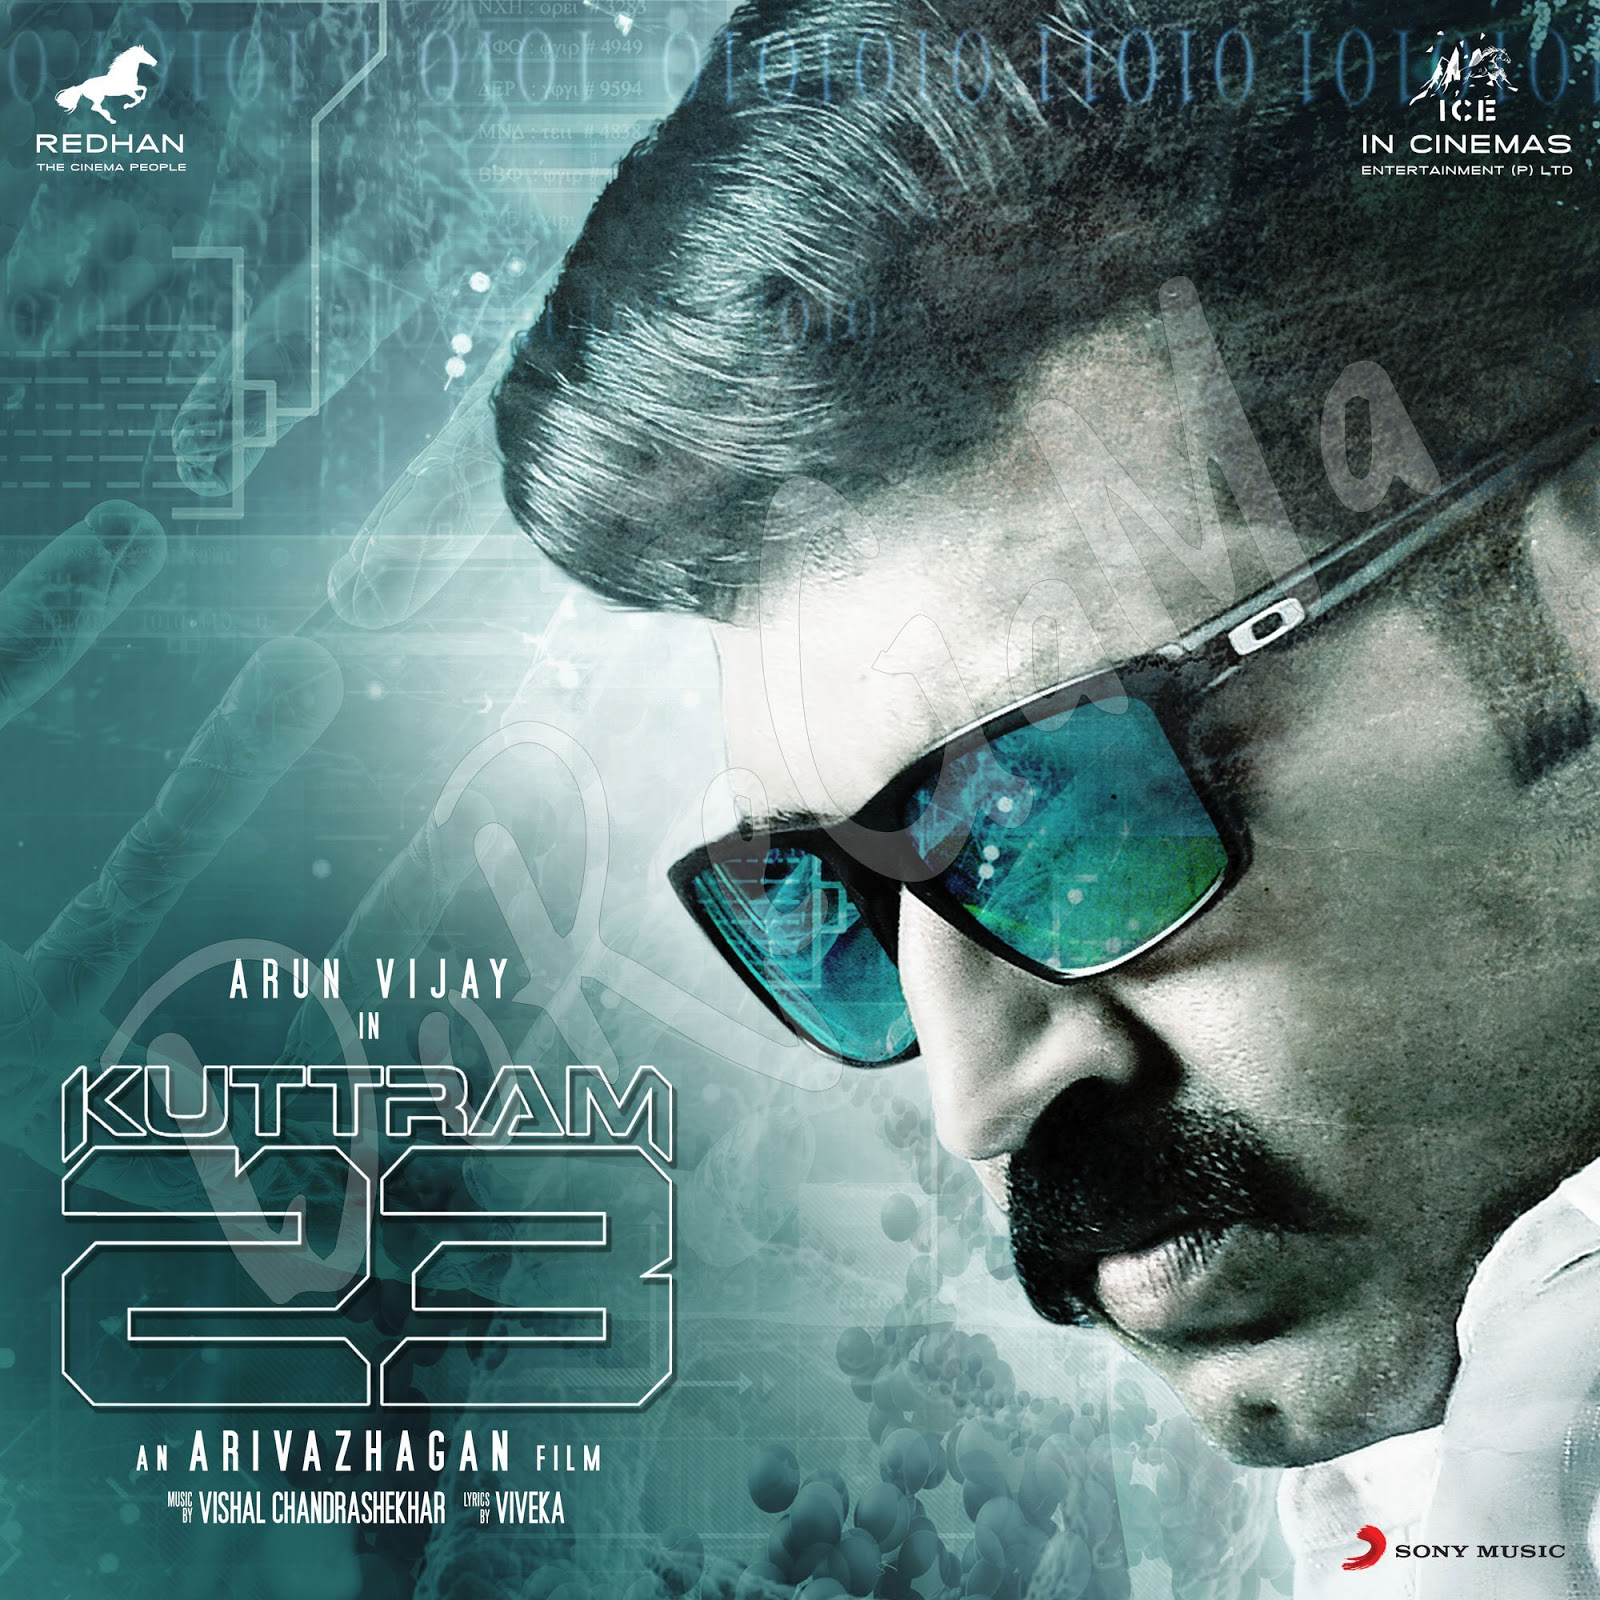 Kuttram 23 (2016) Tamil Movie CD Front Cover Poster Wallpaper HD